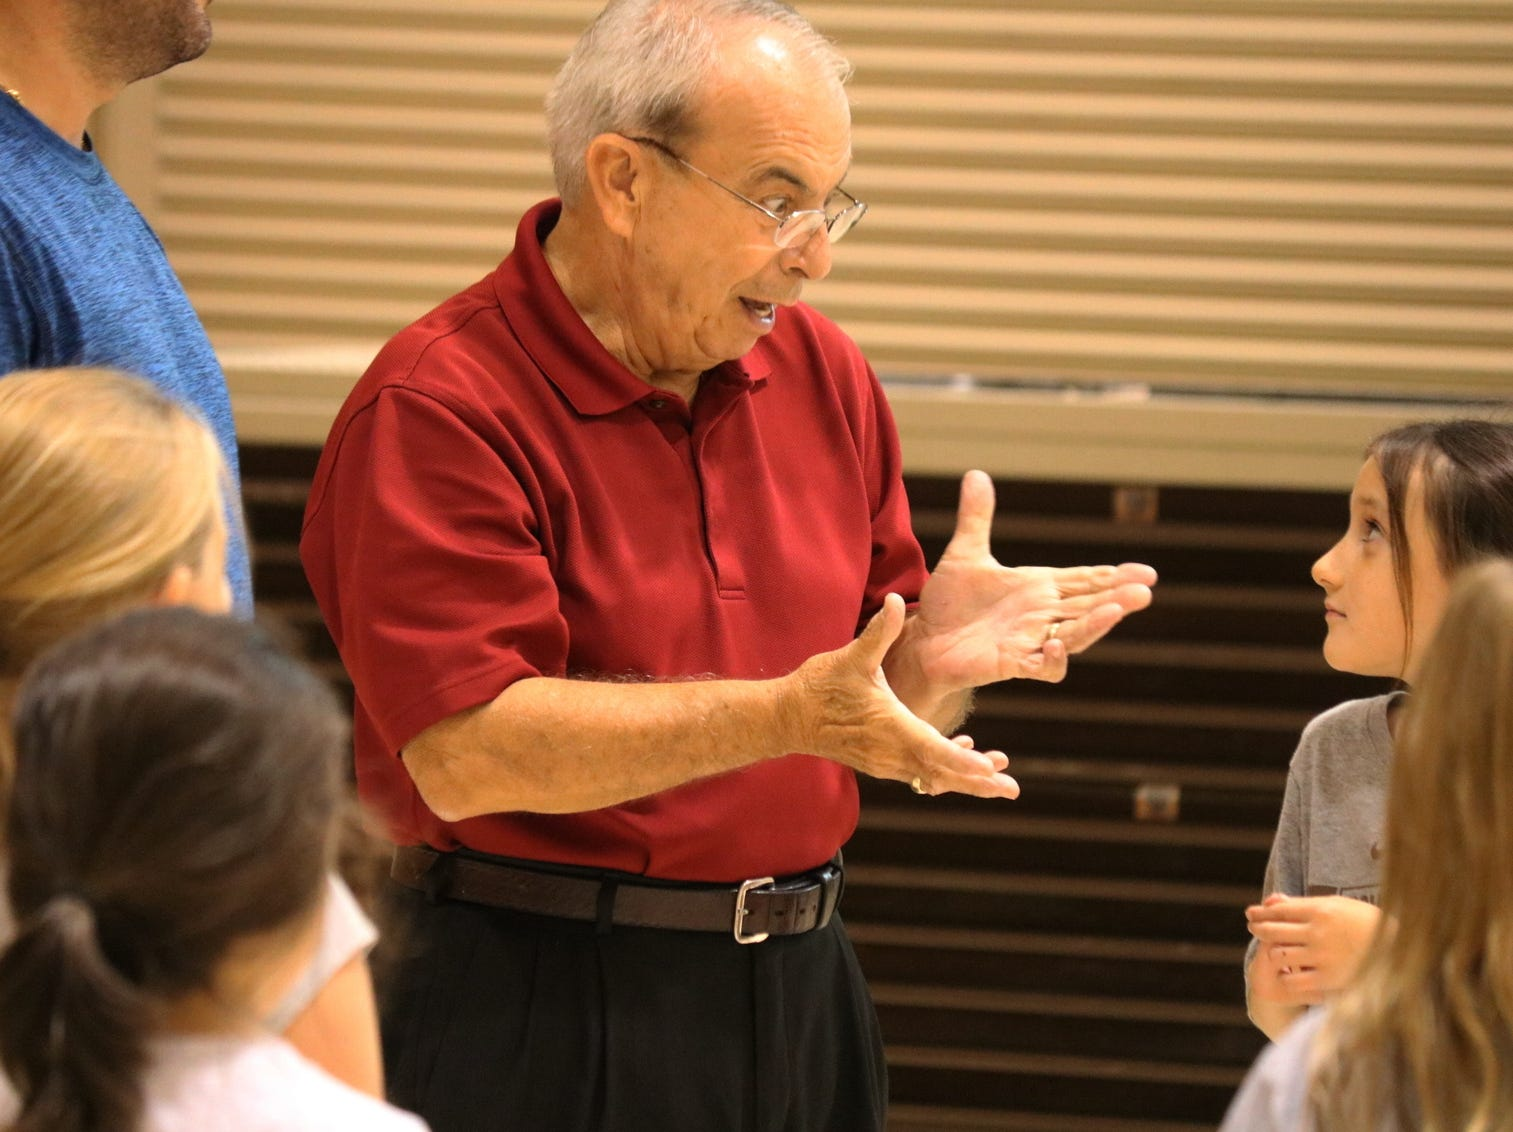 Retired music teacher Greg Fox, of Port Clinton, began teaching Immaculate Conception Students square dancing on Wednesday so they can show what they learned at the Buckles Pig Roast and Square Dance on Oct. 20.